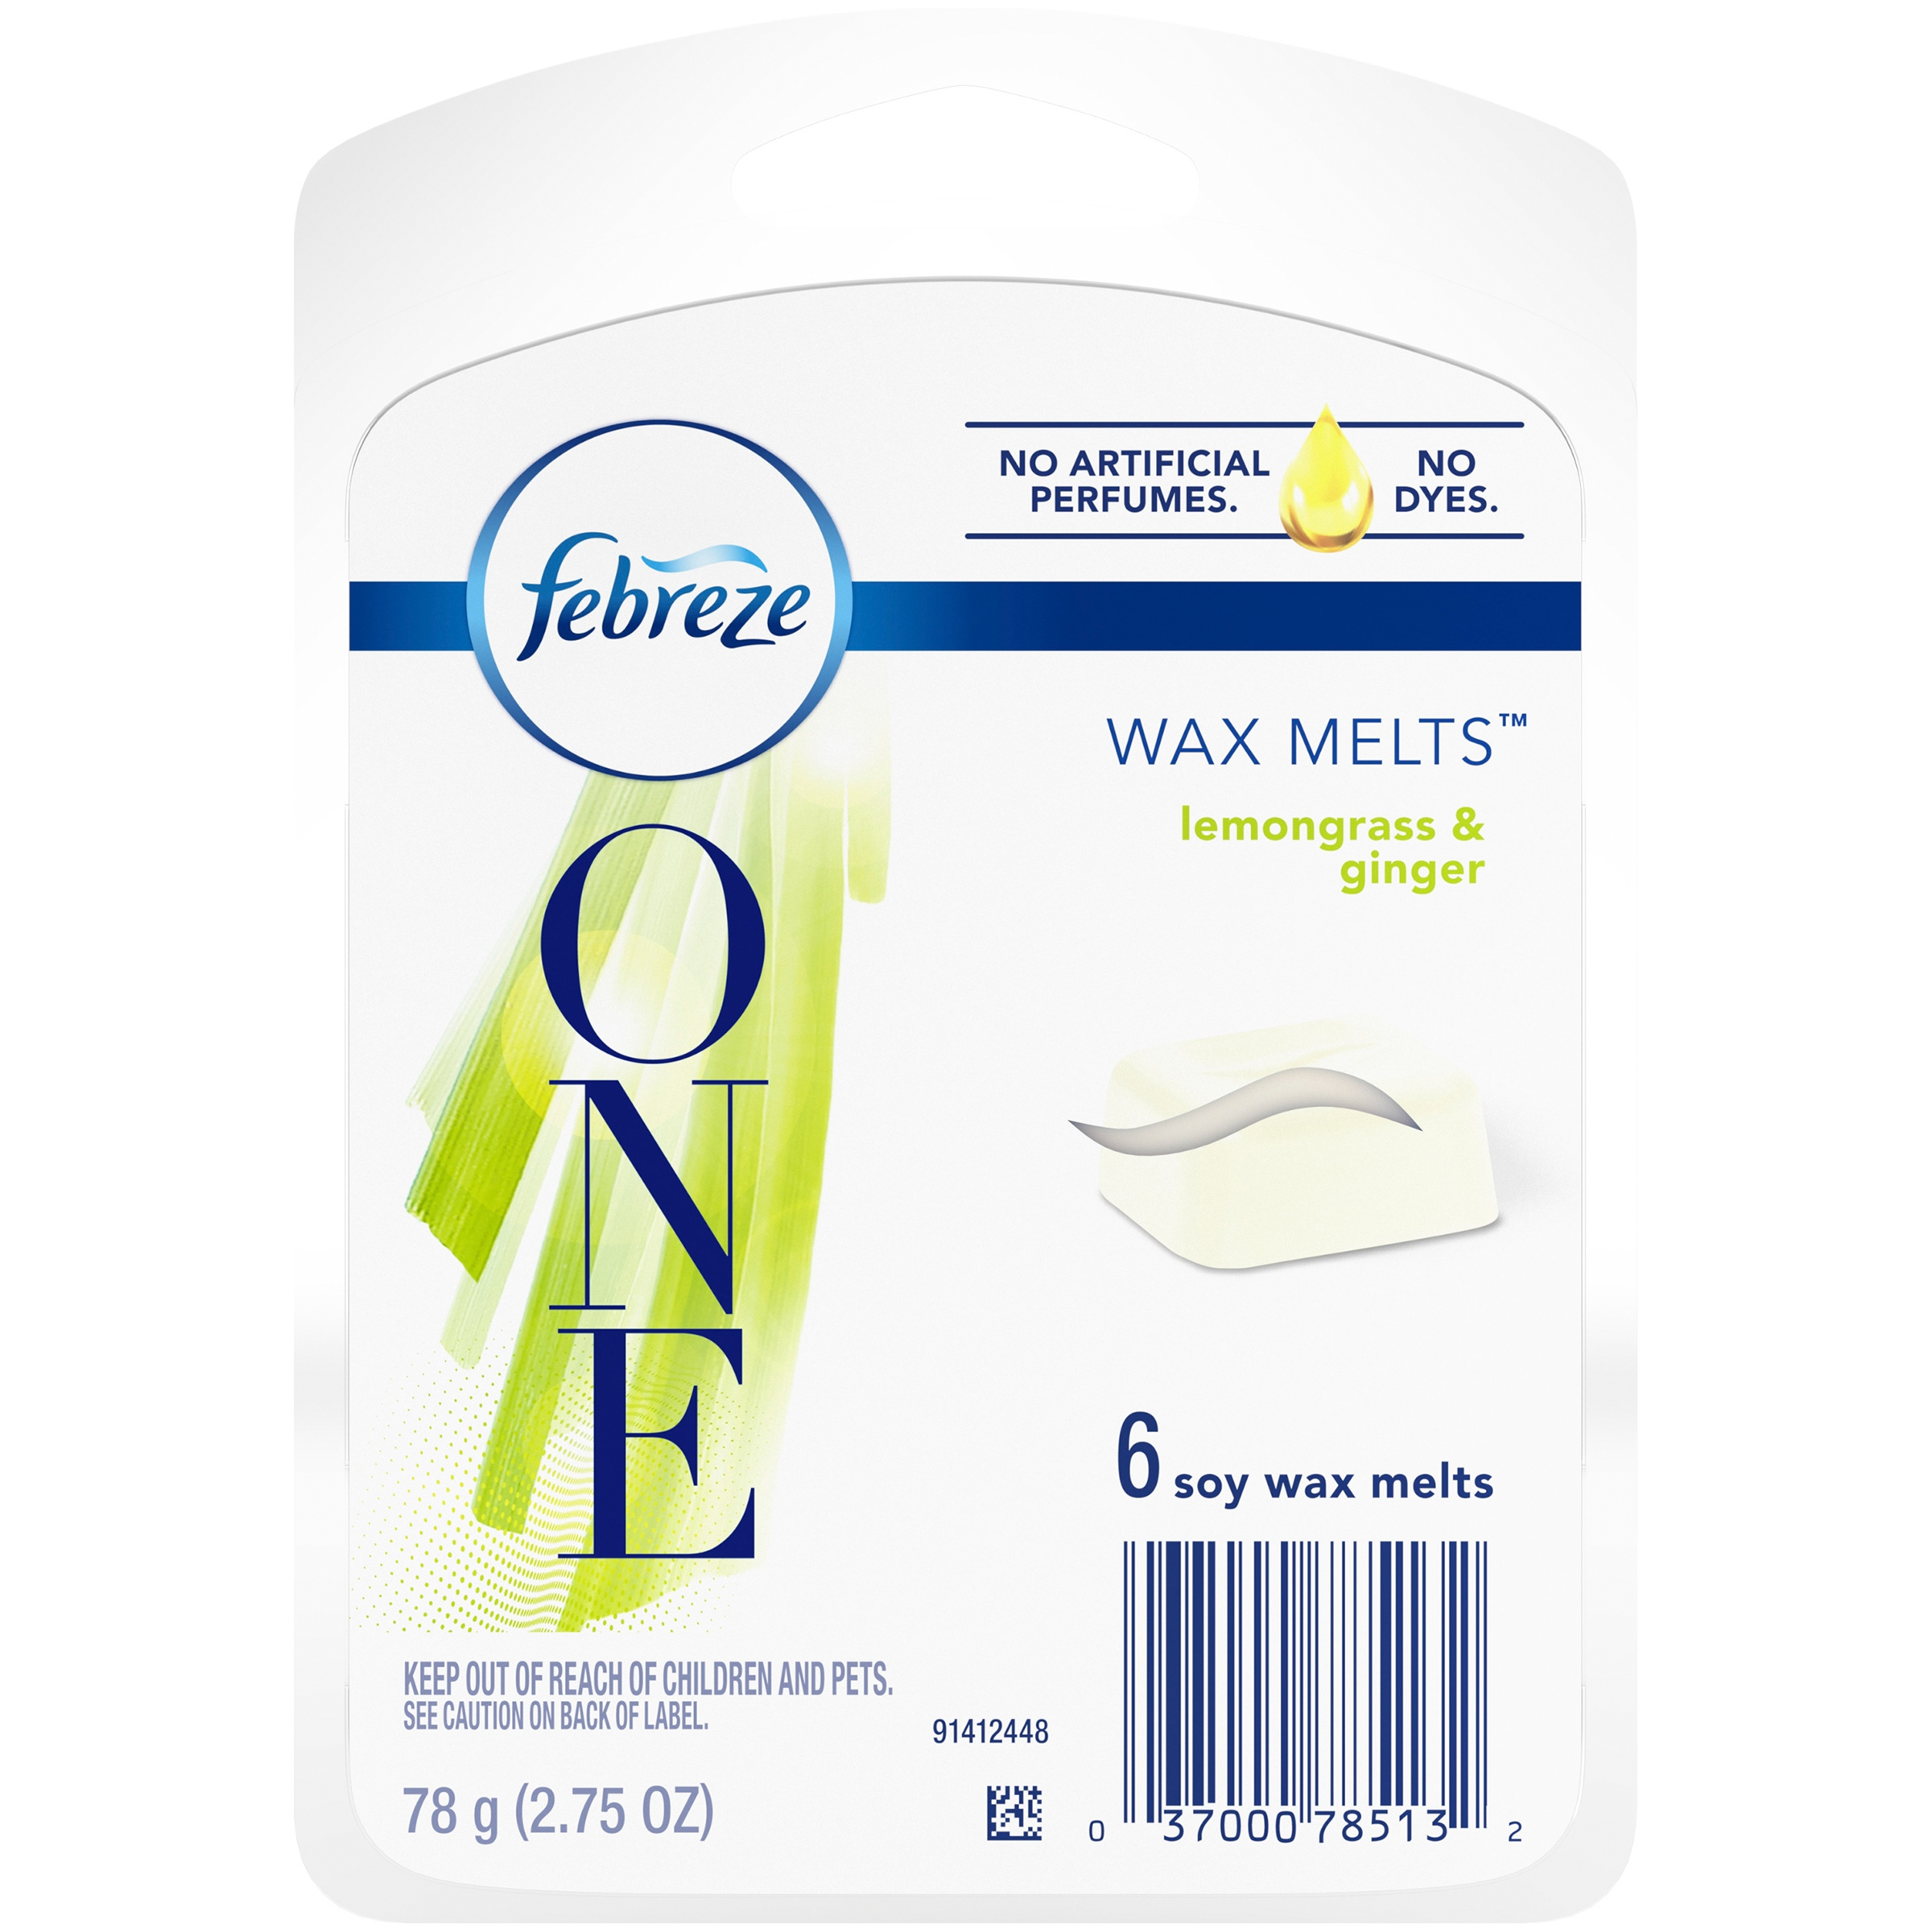 Febreze ONE Soy Wax Melts with Essential Oils, Lemongrass & Ginger Scent, 6 Cubes, 2.75 Ounce